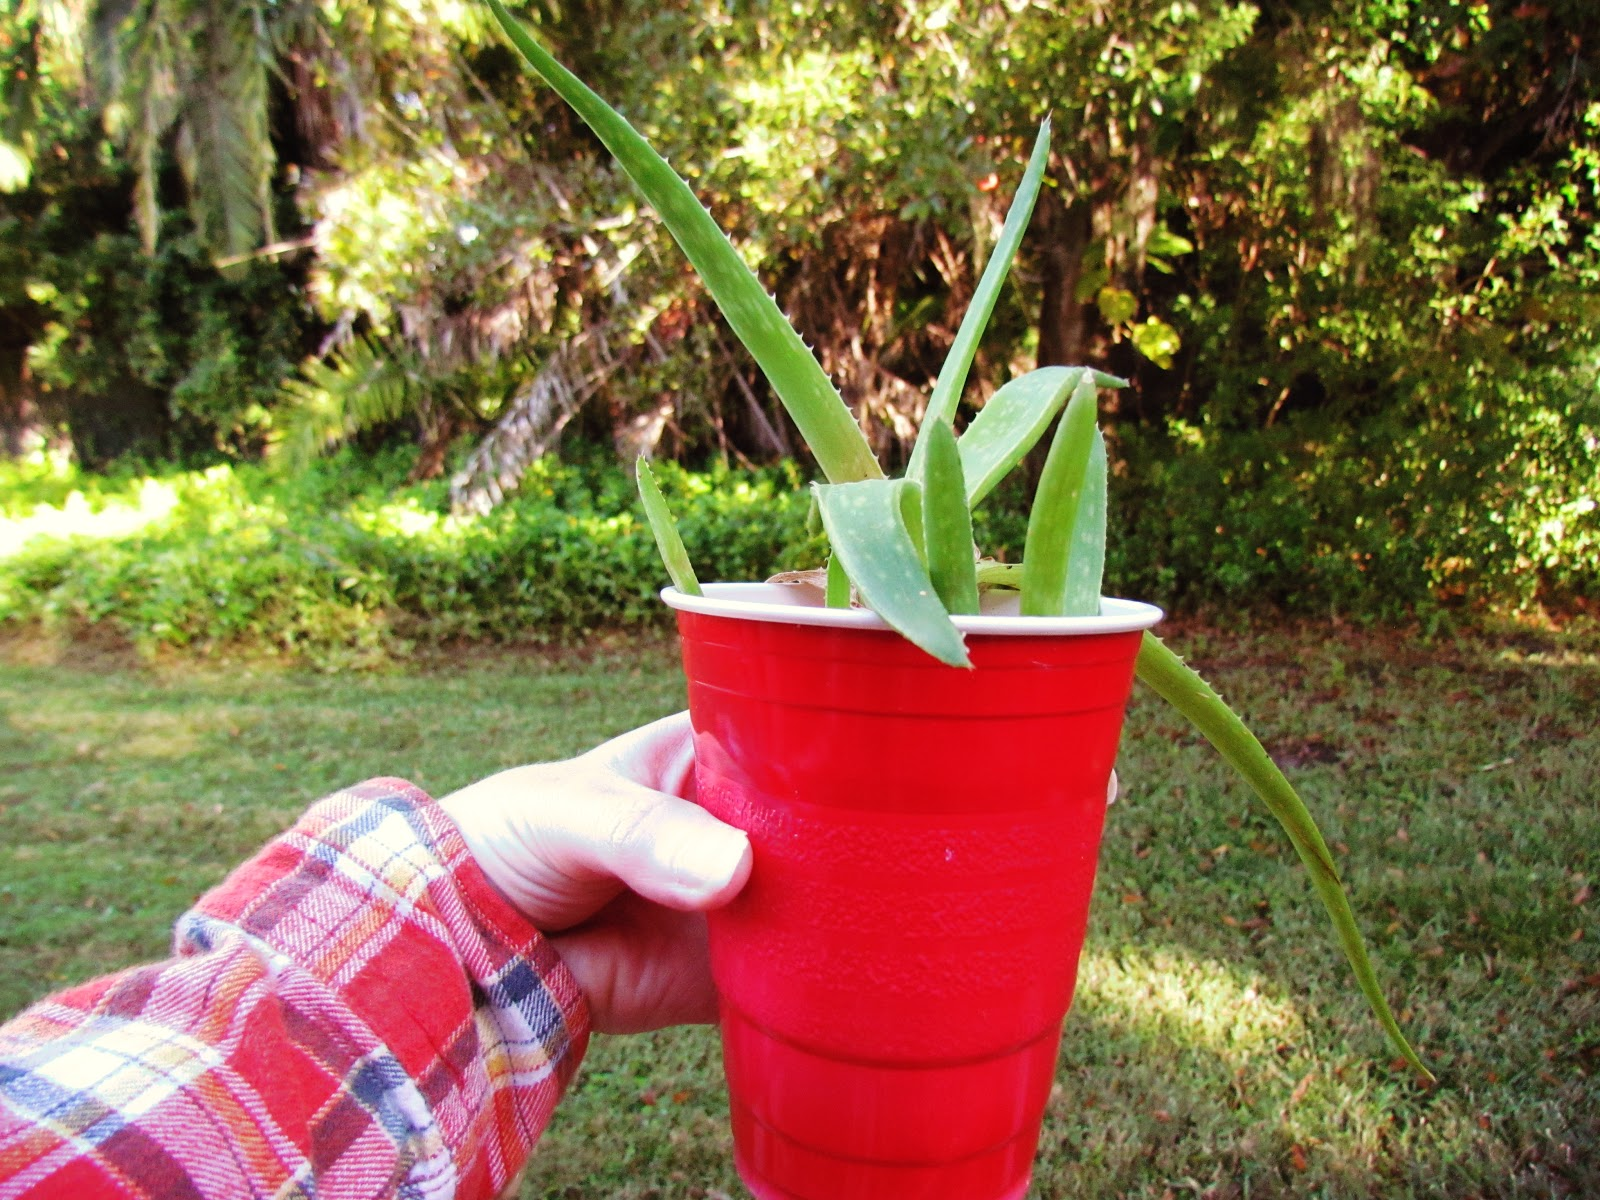 A woman wearing red flannel holding an aloe vera plant in a red potted cup in the backyard in Florida